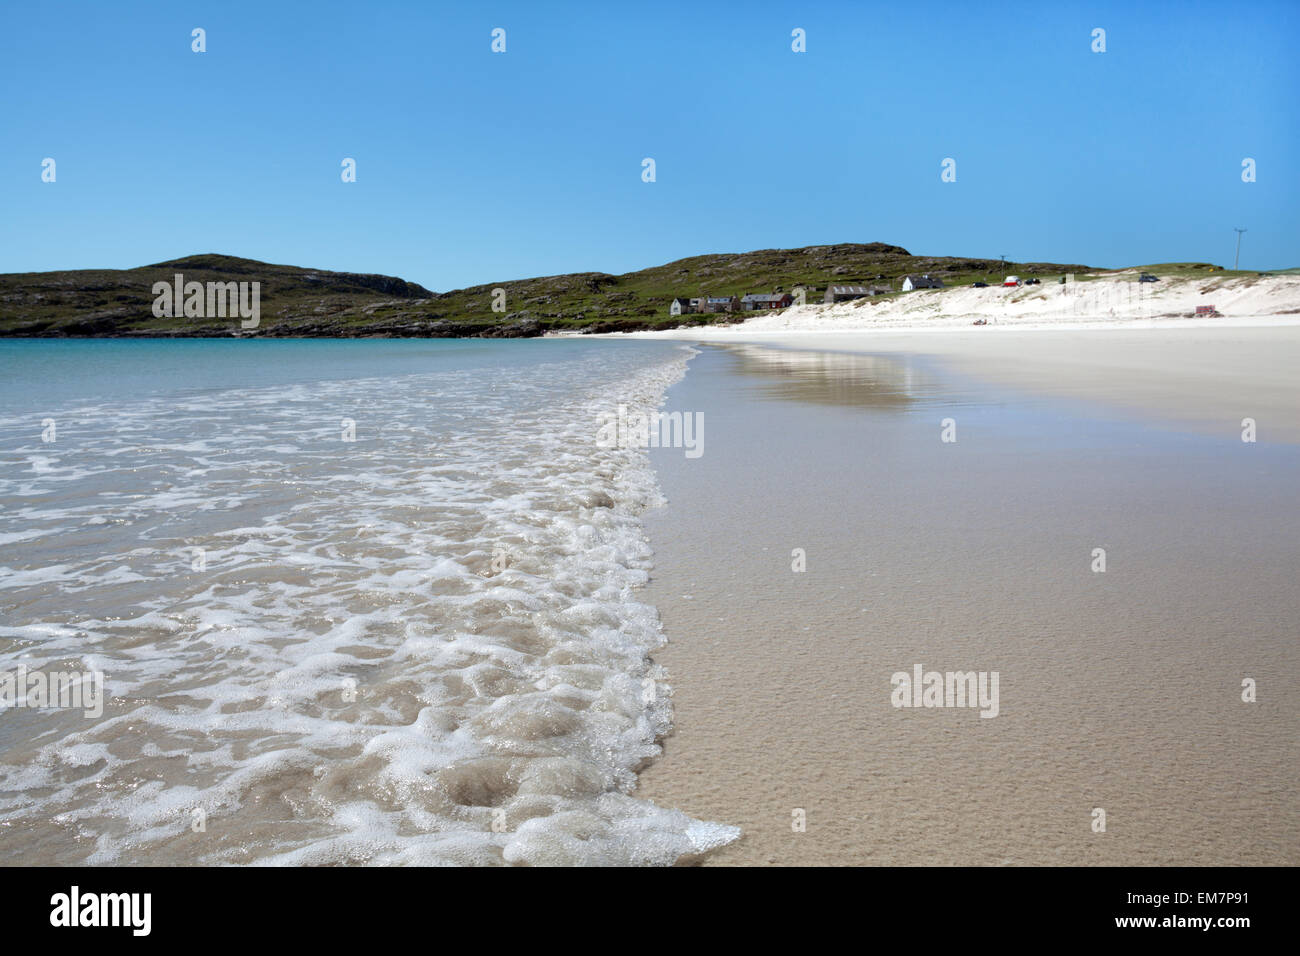 Sandy beach on the isle of Harris, Outer Hebrides, Scotland Stock Photo